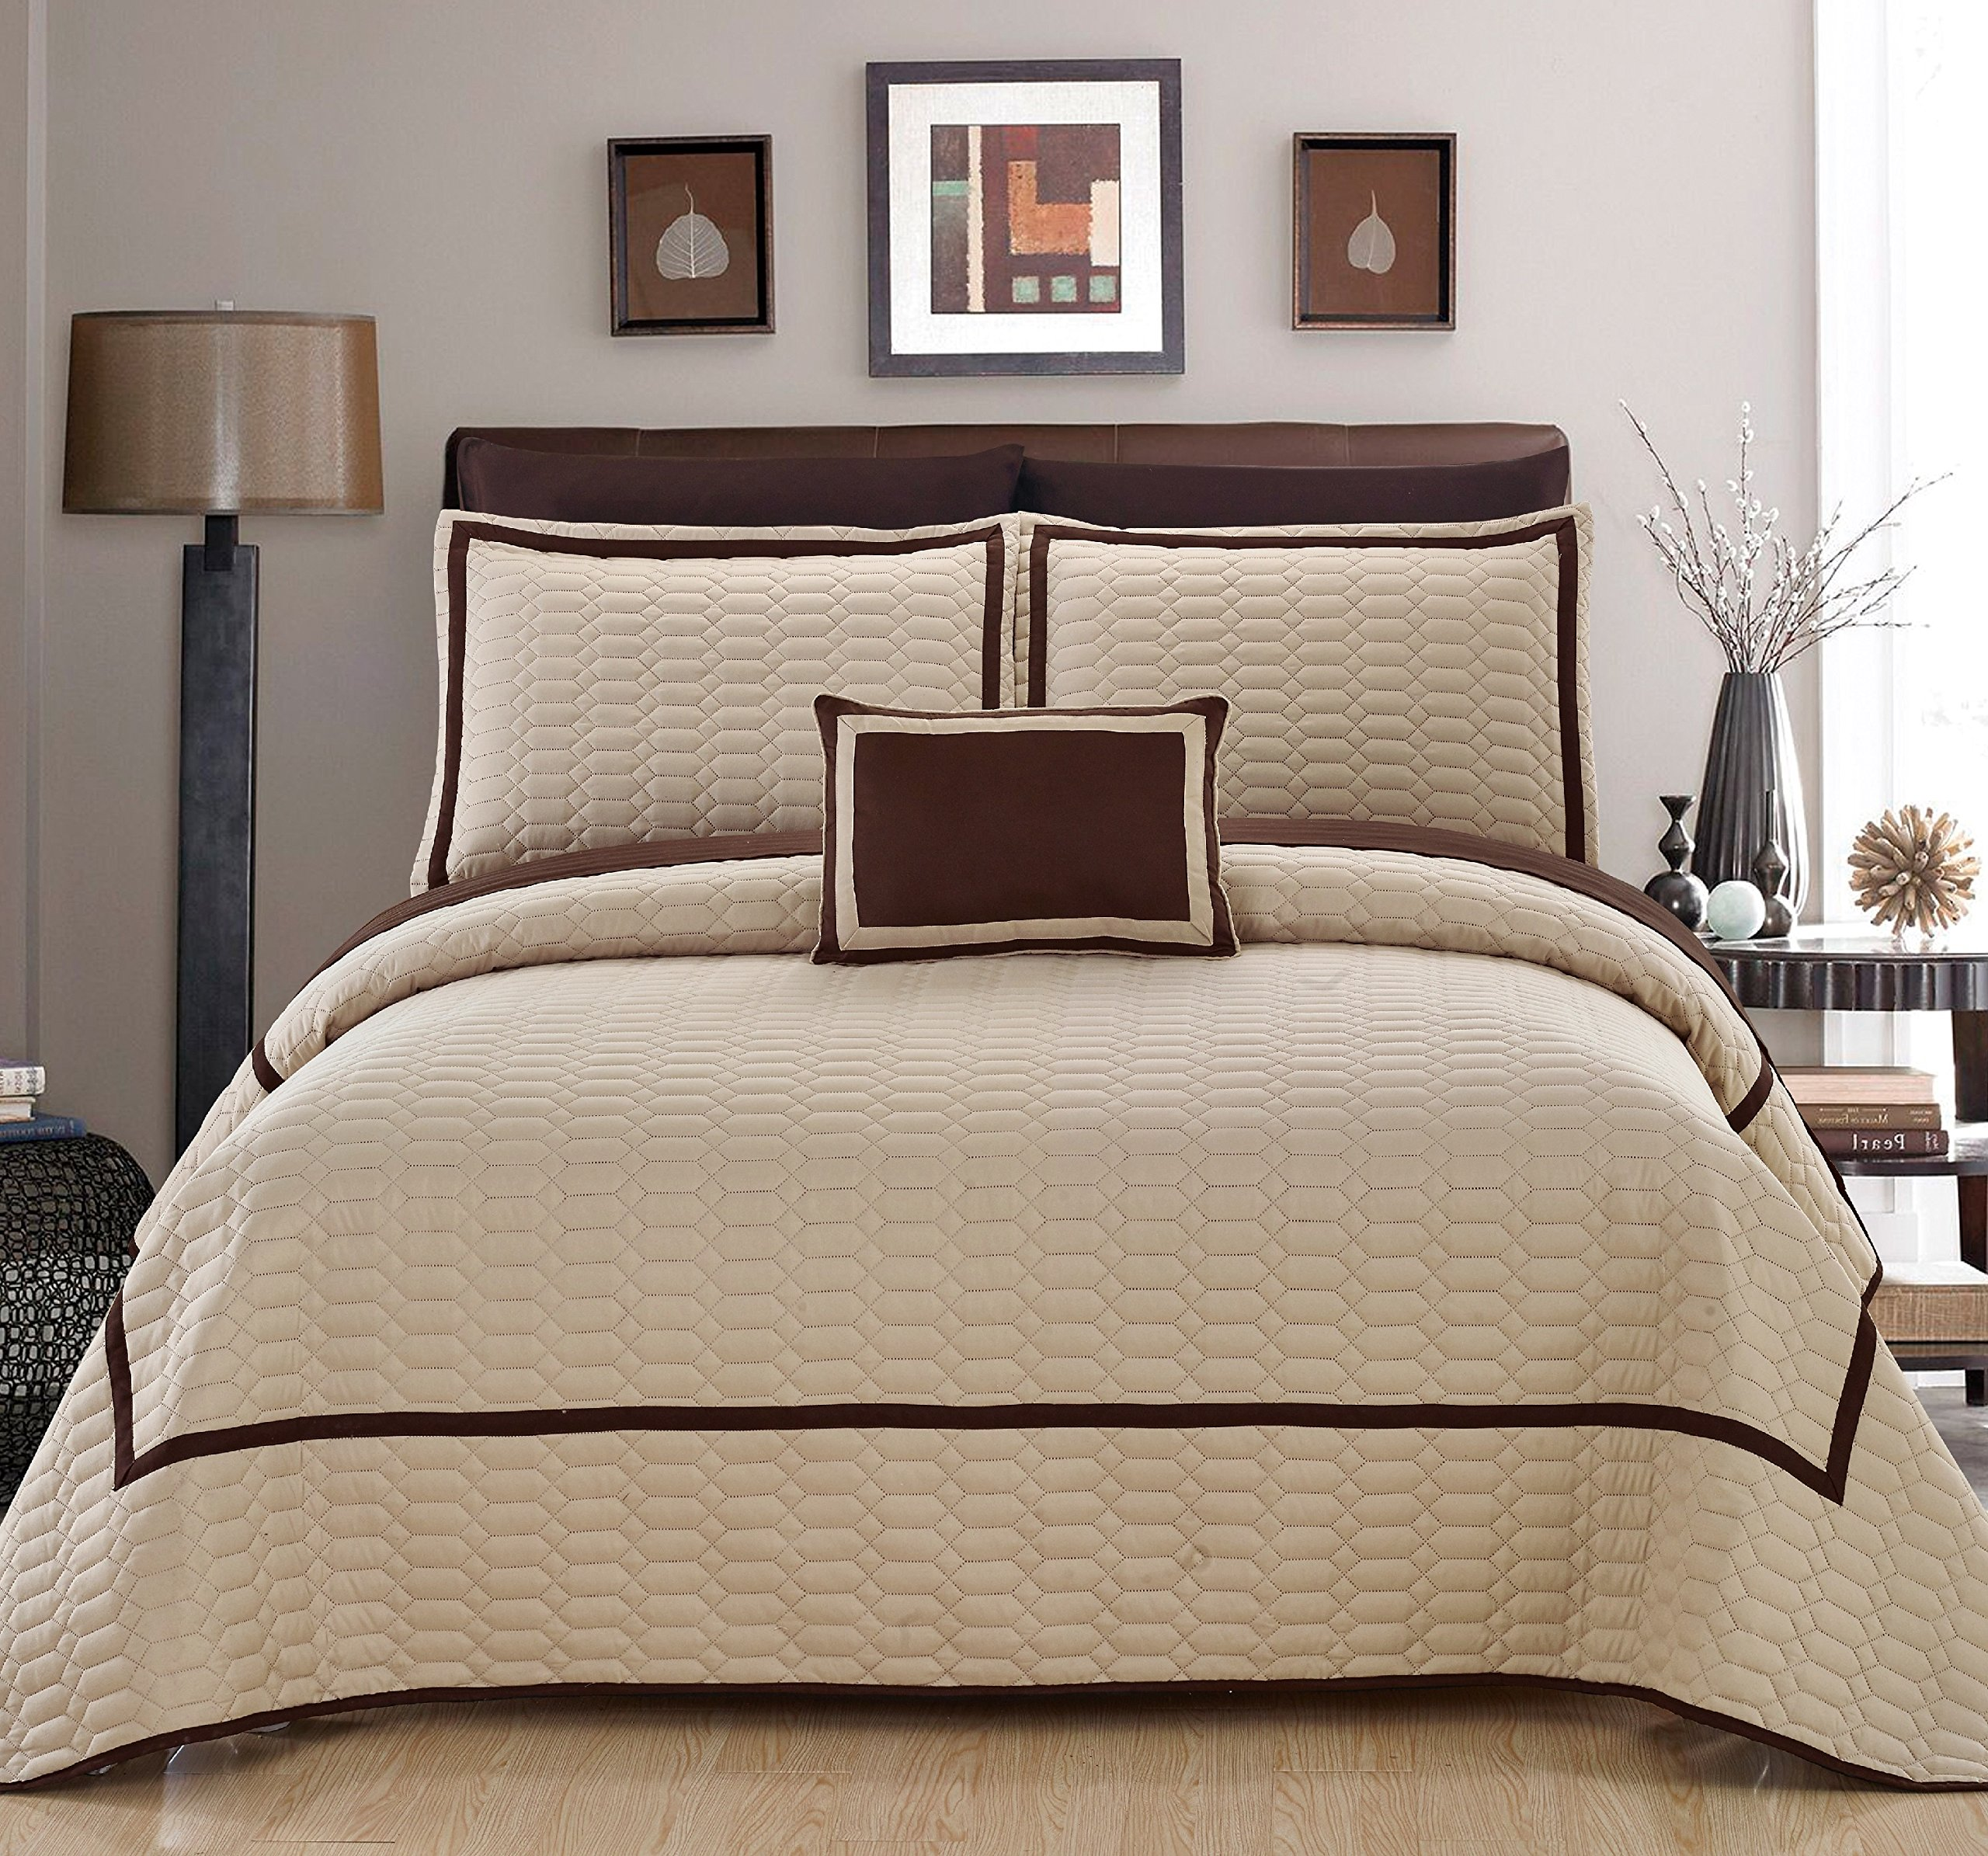 Noelle 8 Piece Hotel Collection 2 tone banded Geometrical Embroidered, Includes sheets set King Quilt Set Beige